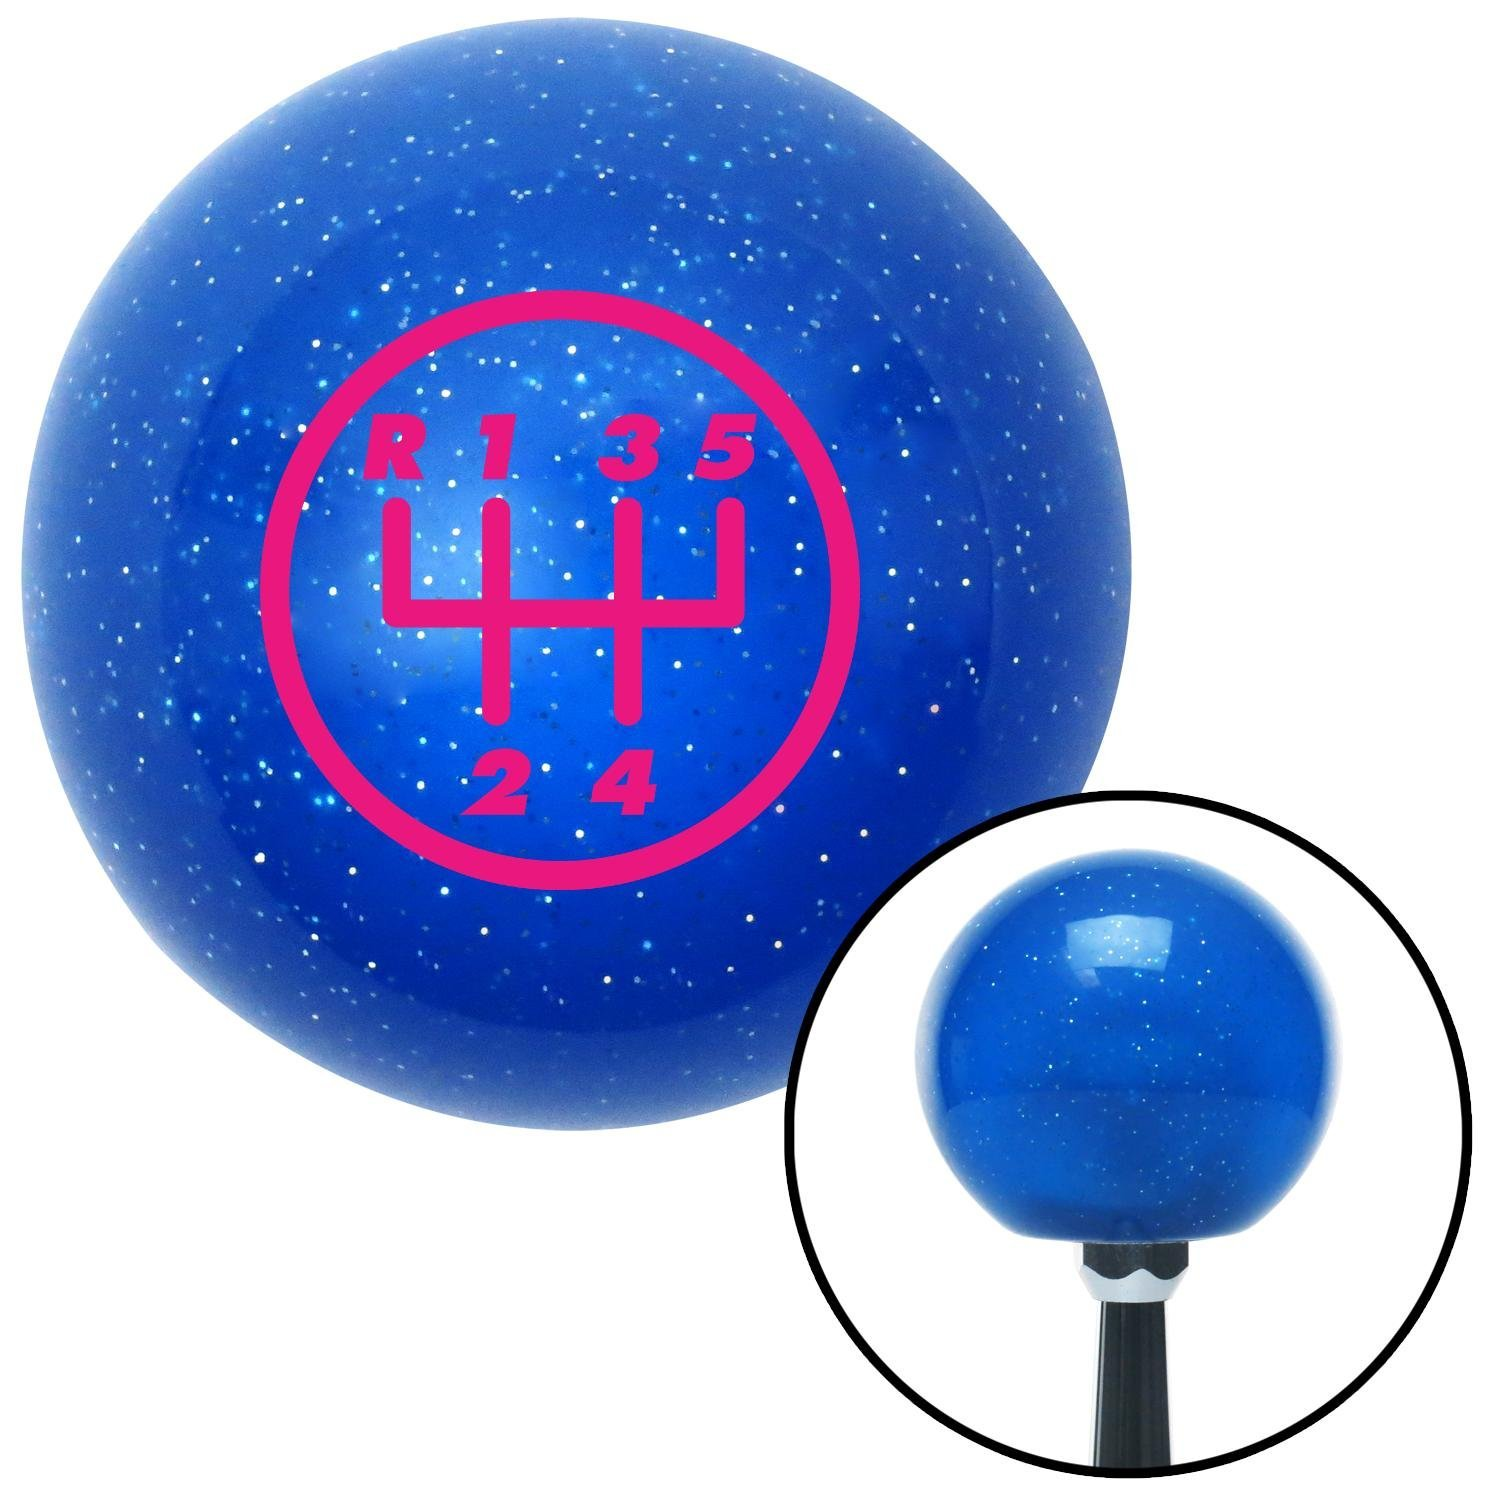 Pink 5 Speed Shift Pattern - 5UR-RUL American Shifter 19720 Blue Metal Flake Shift Knob with 16mm x 1.5 Insert